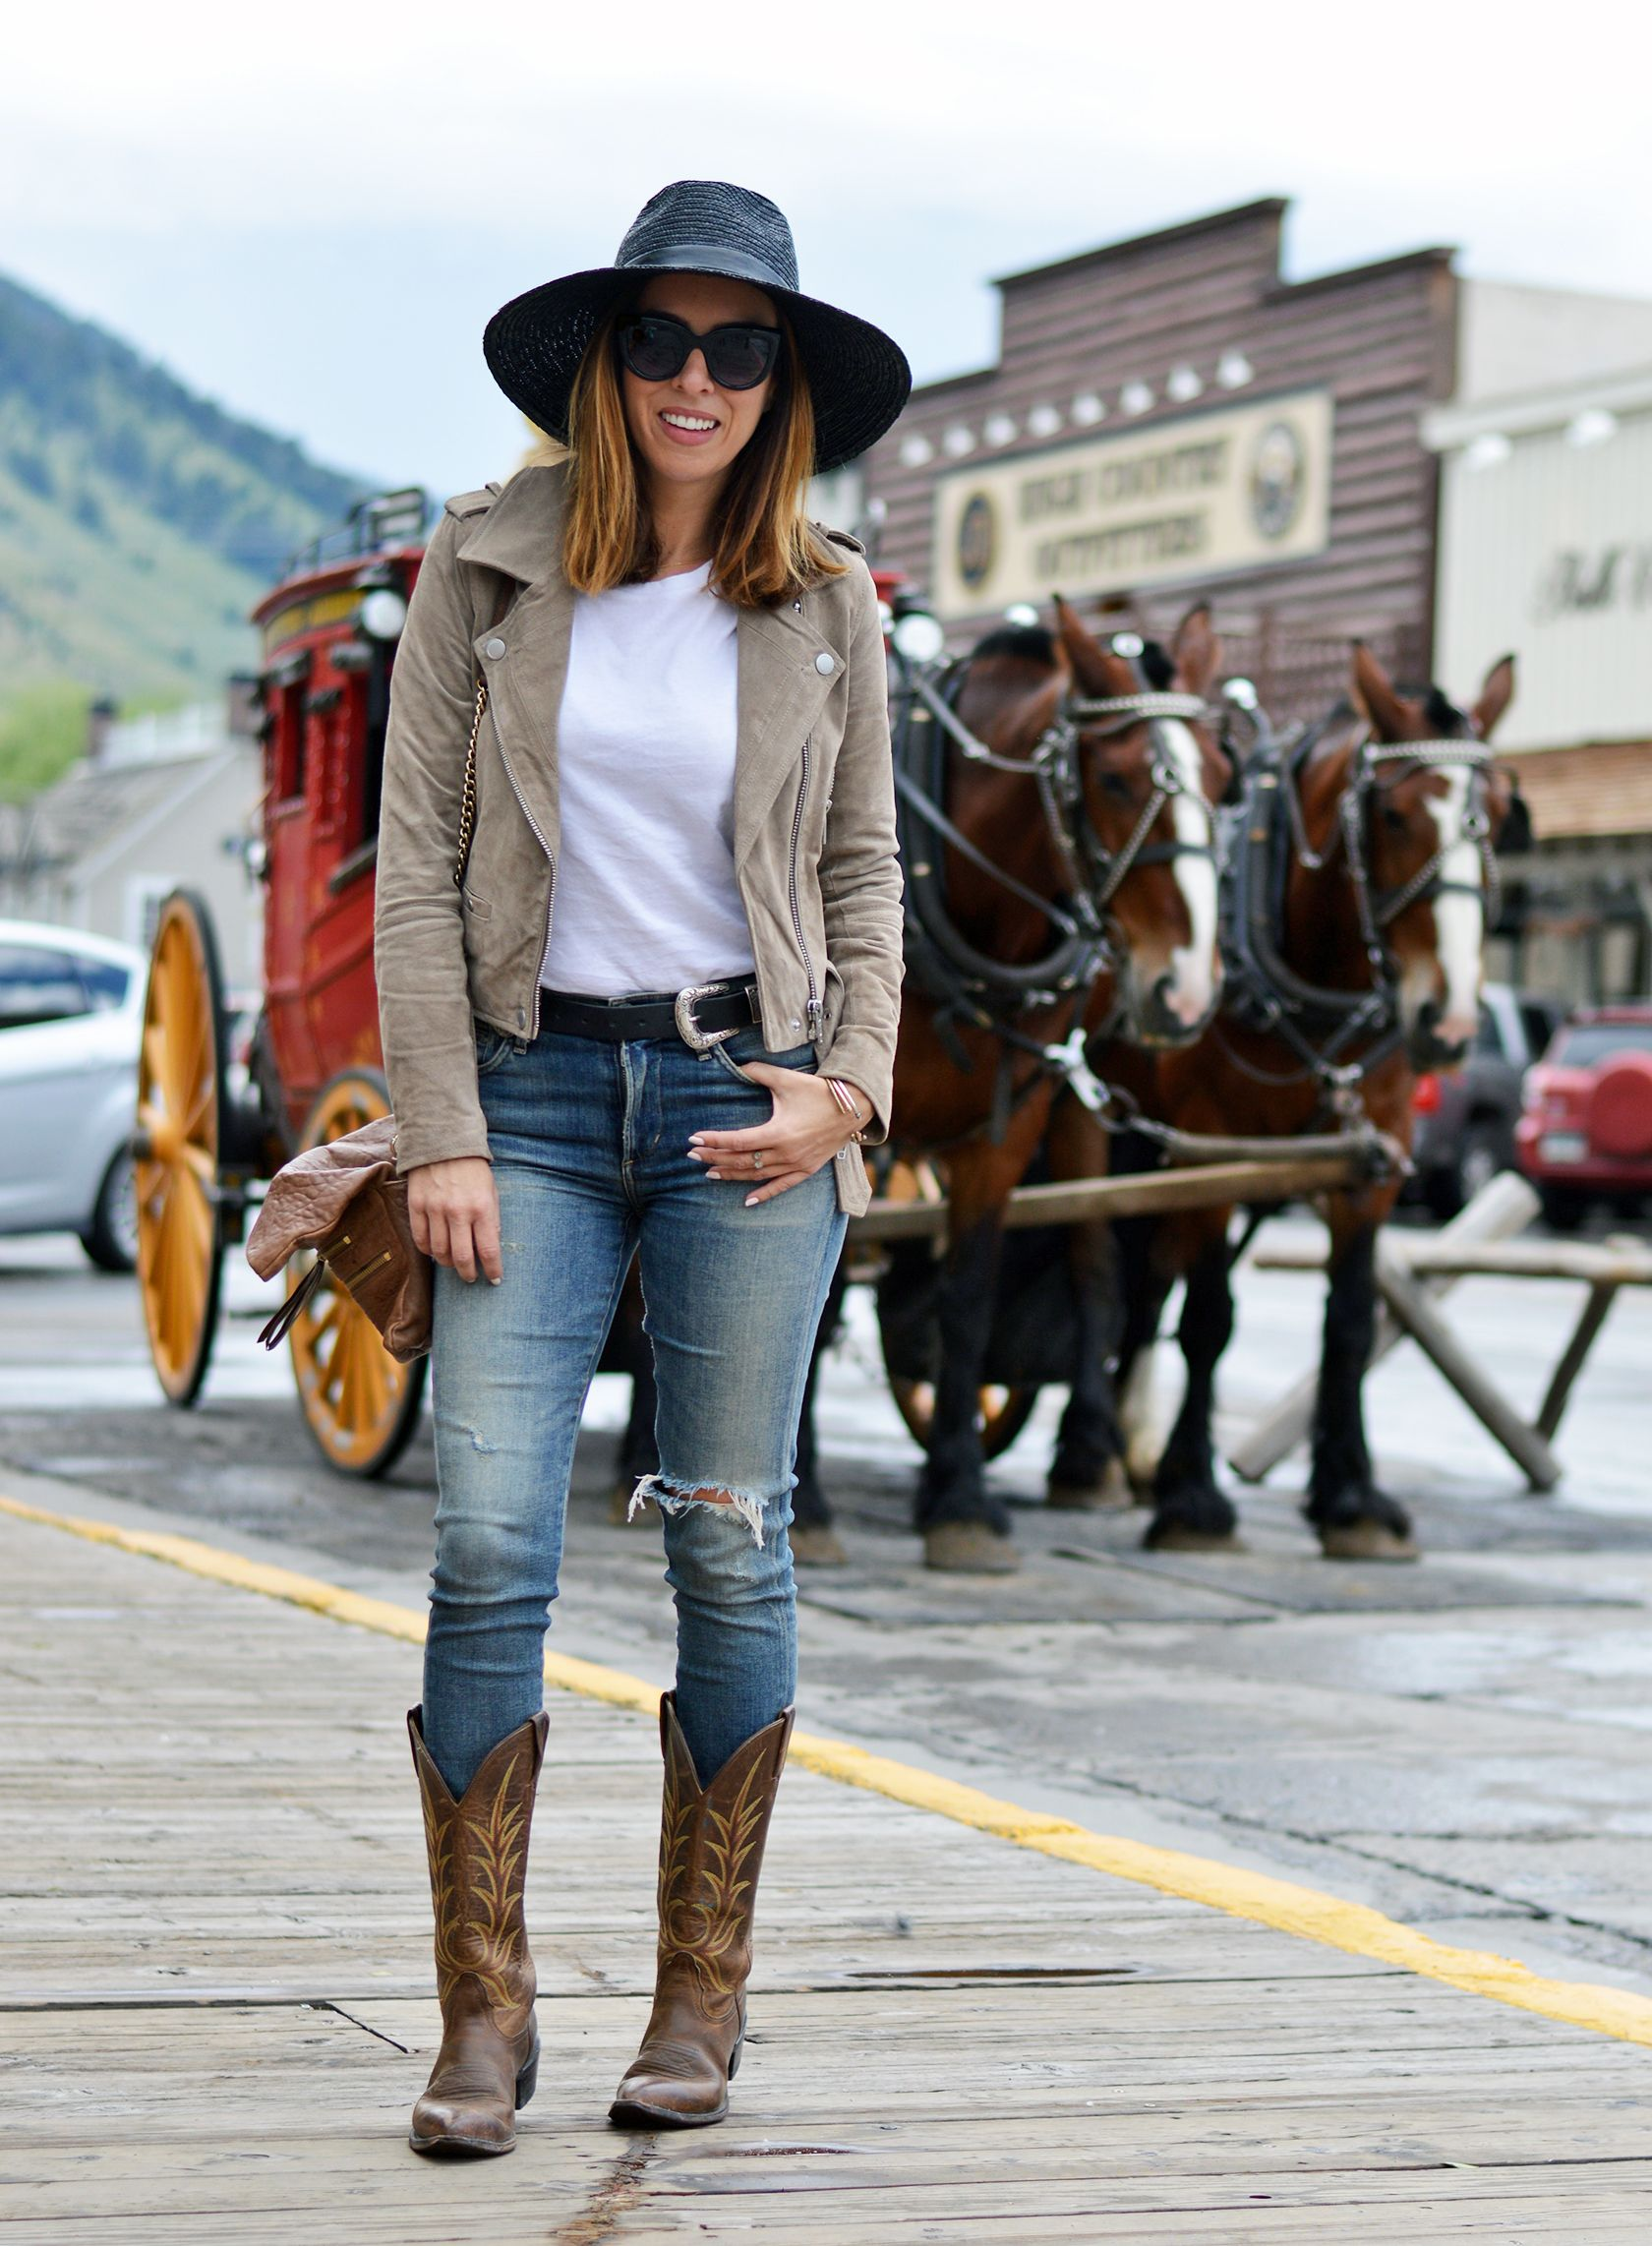 b0eab806c9 Are Cowboy Boots In Style? Cowboy Boots from Day to Night | Sydne ...